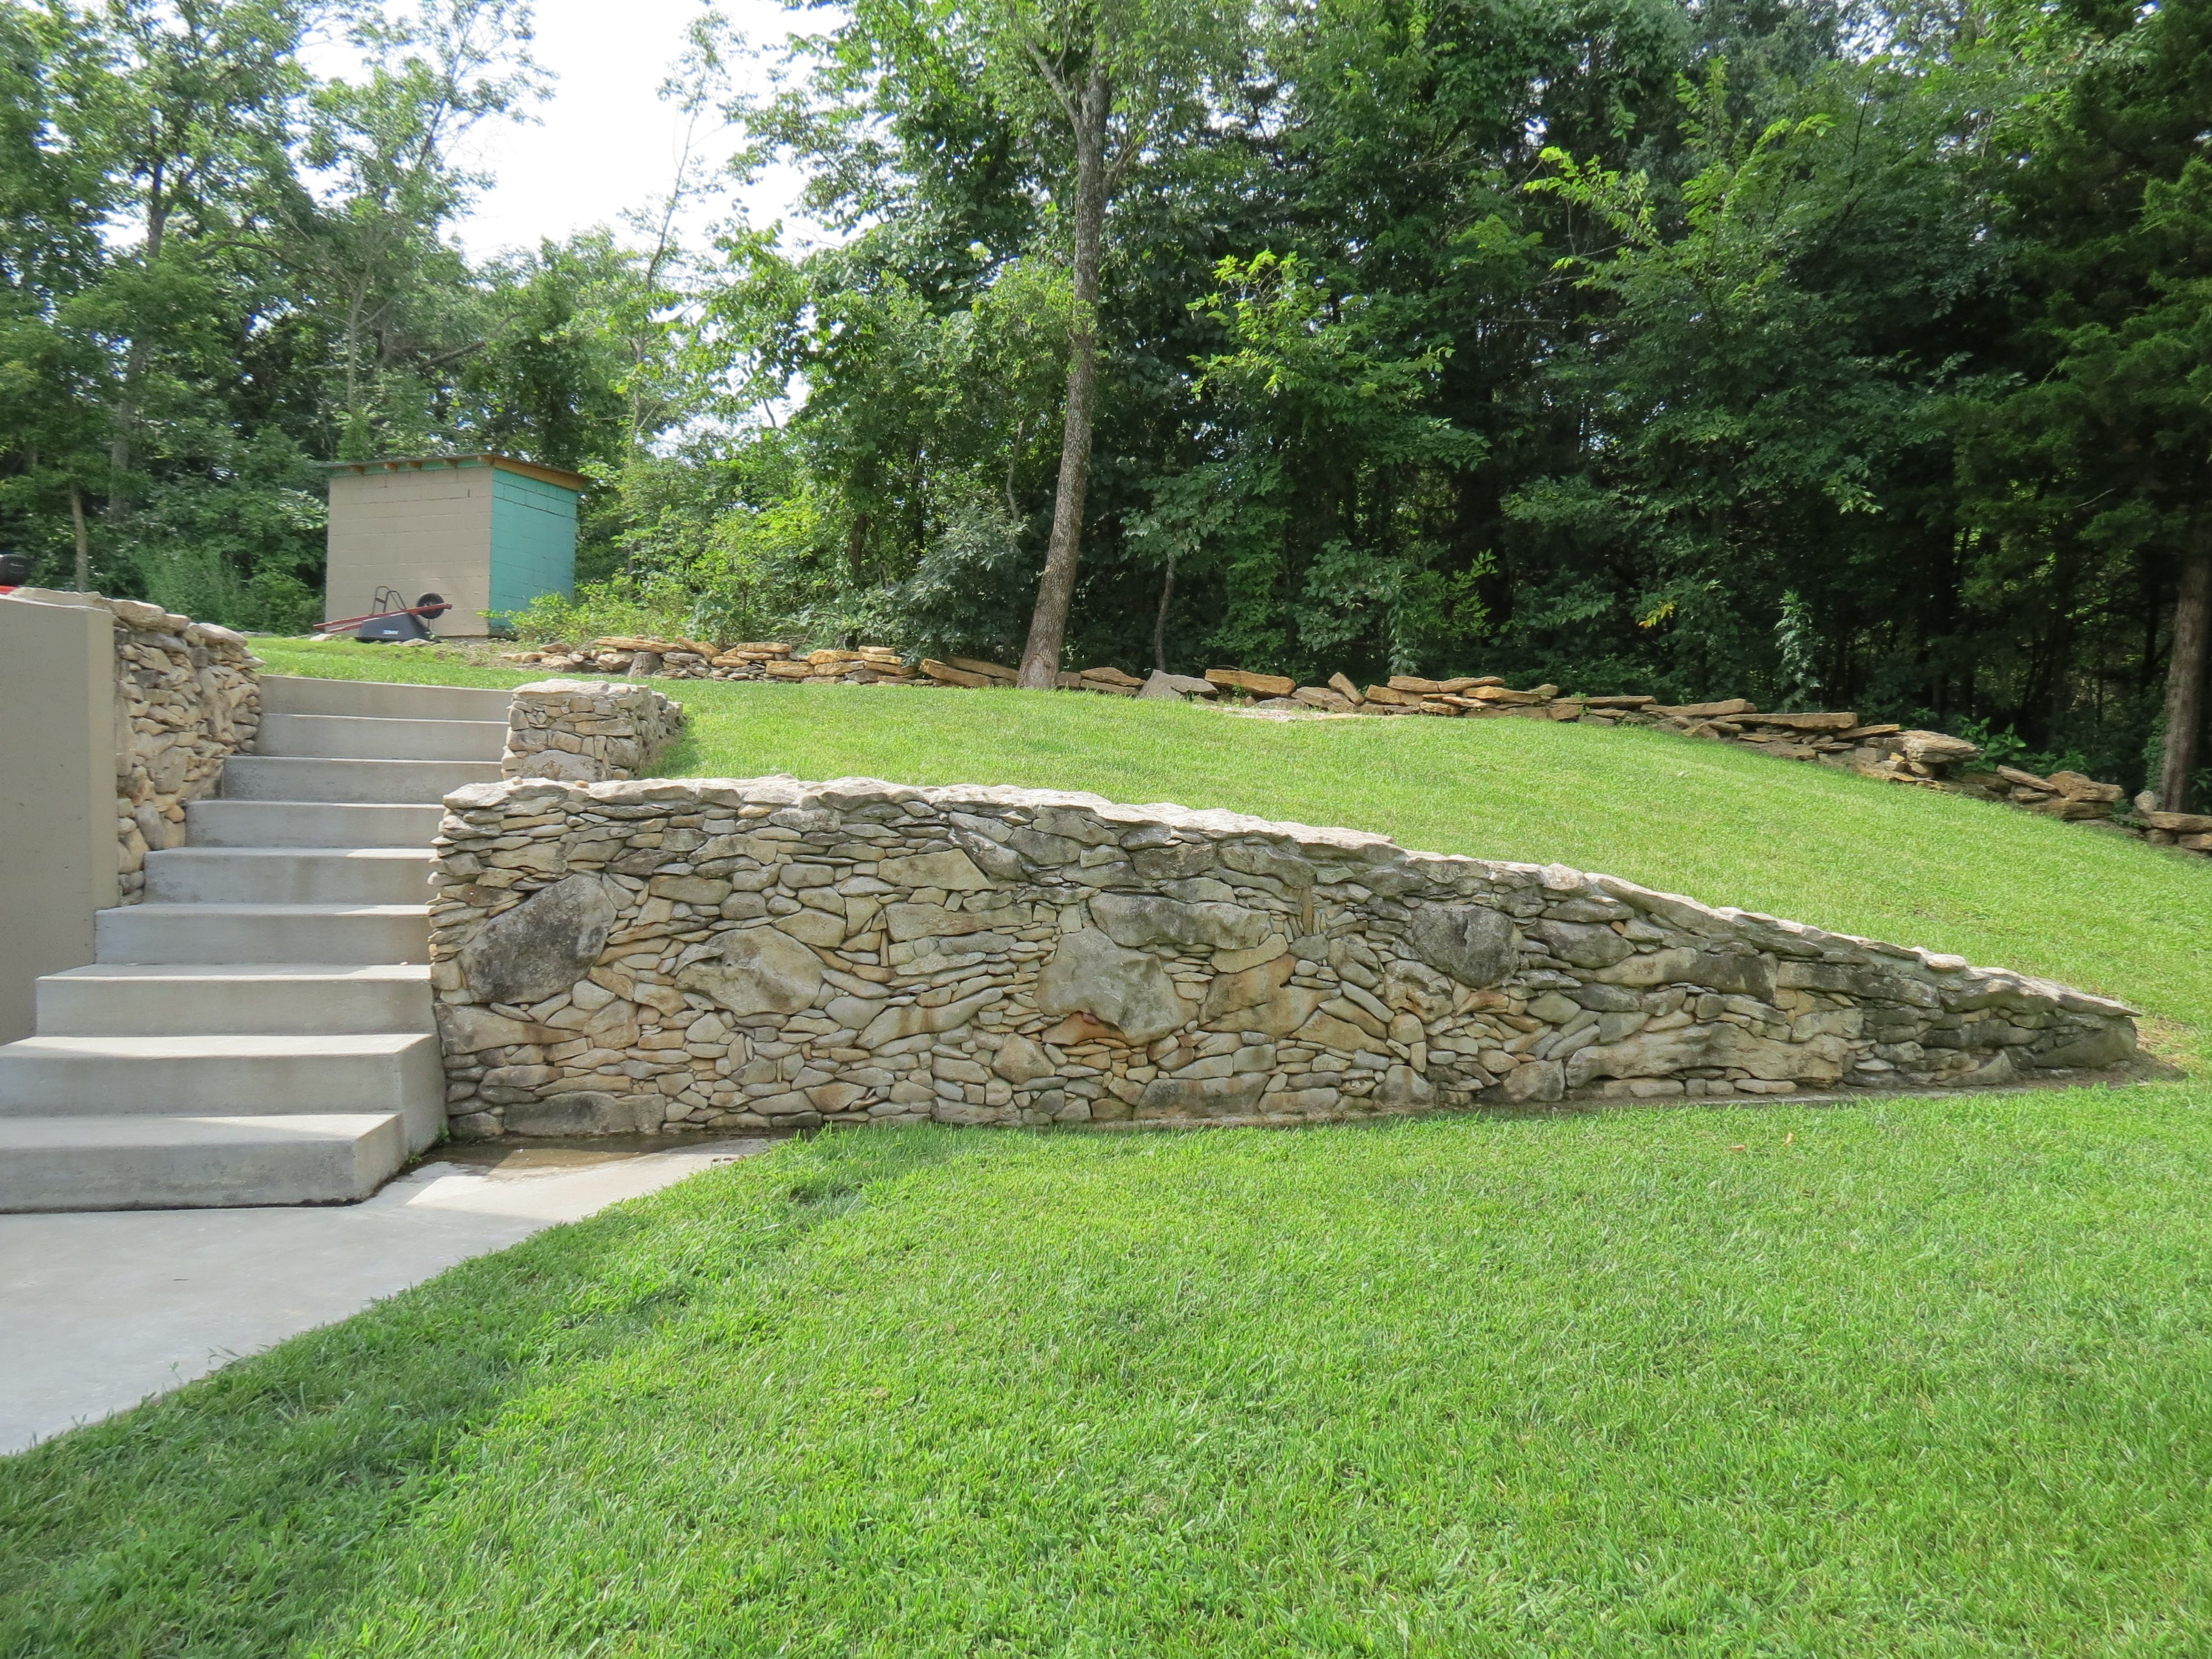 Drystack Kansas Fieldstone Retaining Wall Wall Length 15ft Wall Height 4 5ft Tapering To 1ft Wall De Backyard Patio Designs Backyard Landscaping Sloped Yard